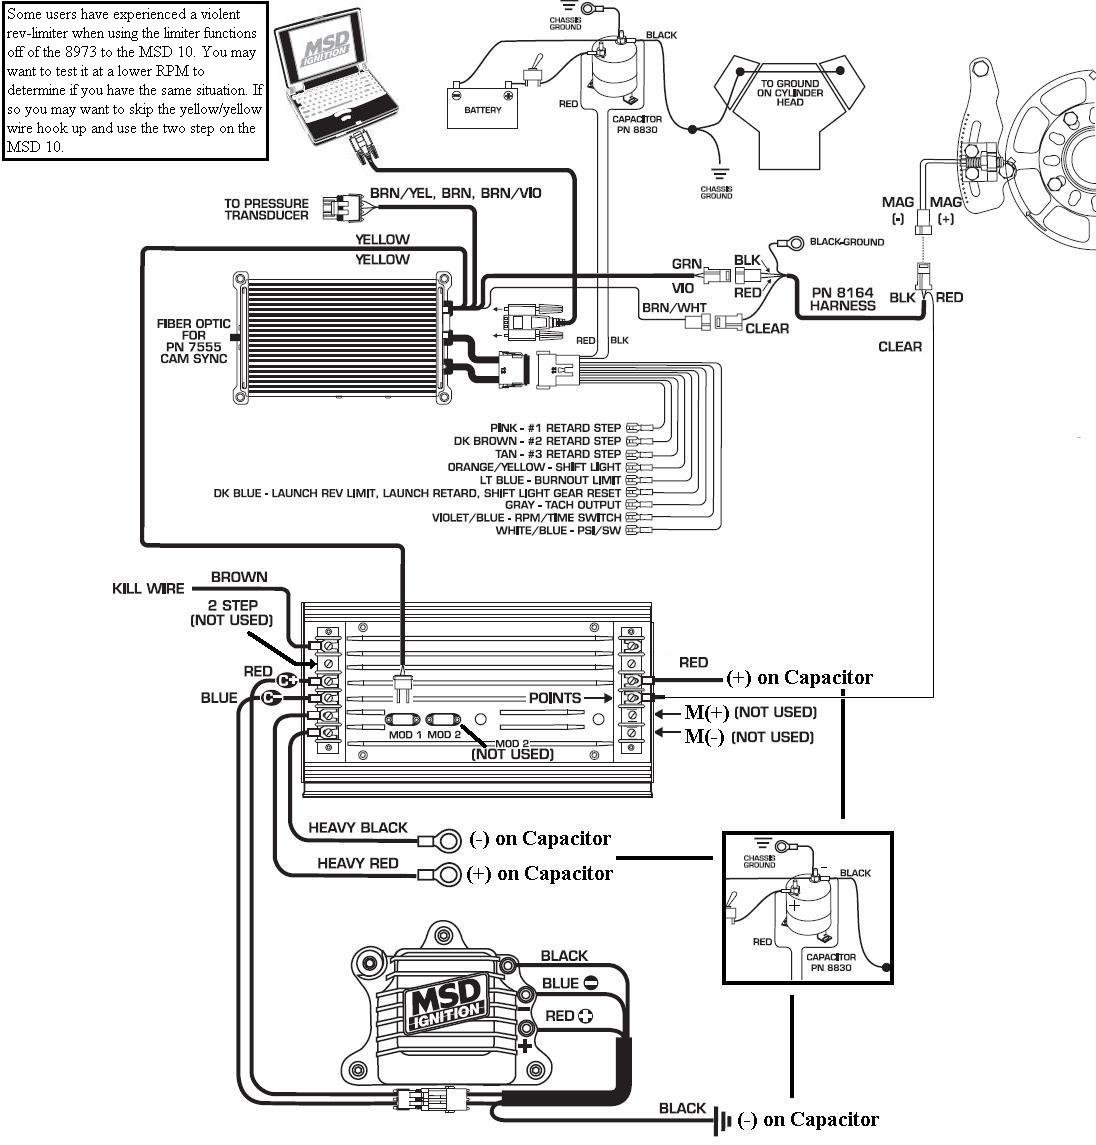 msd 8350 wiring diagram   23 wiring diagram images